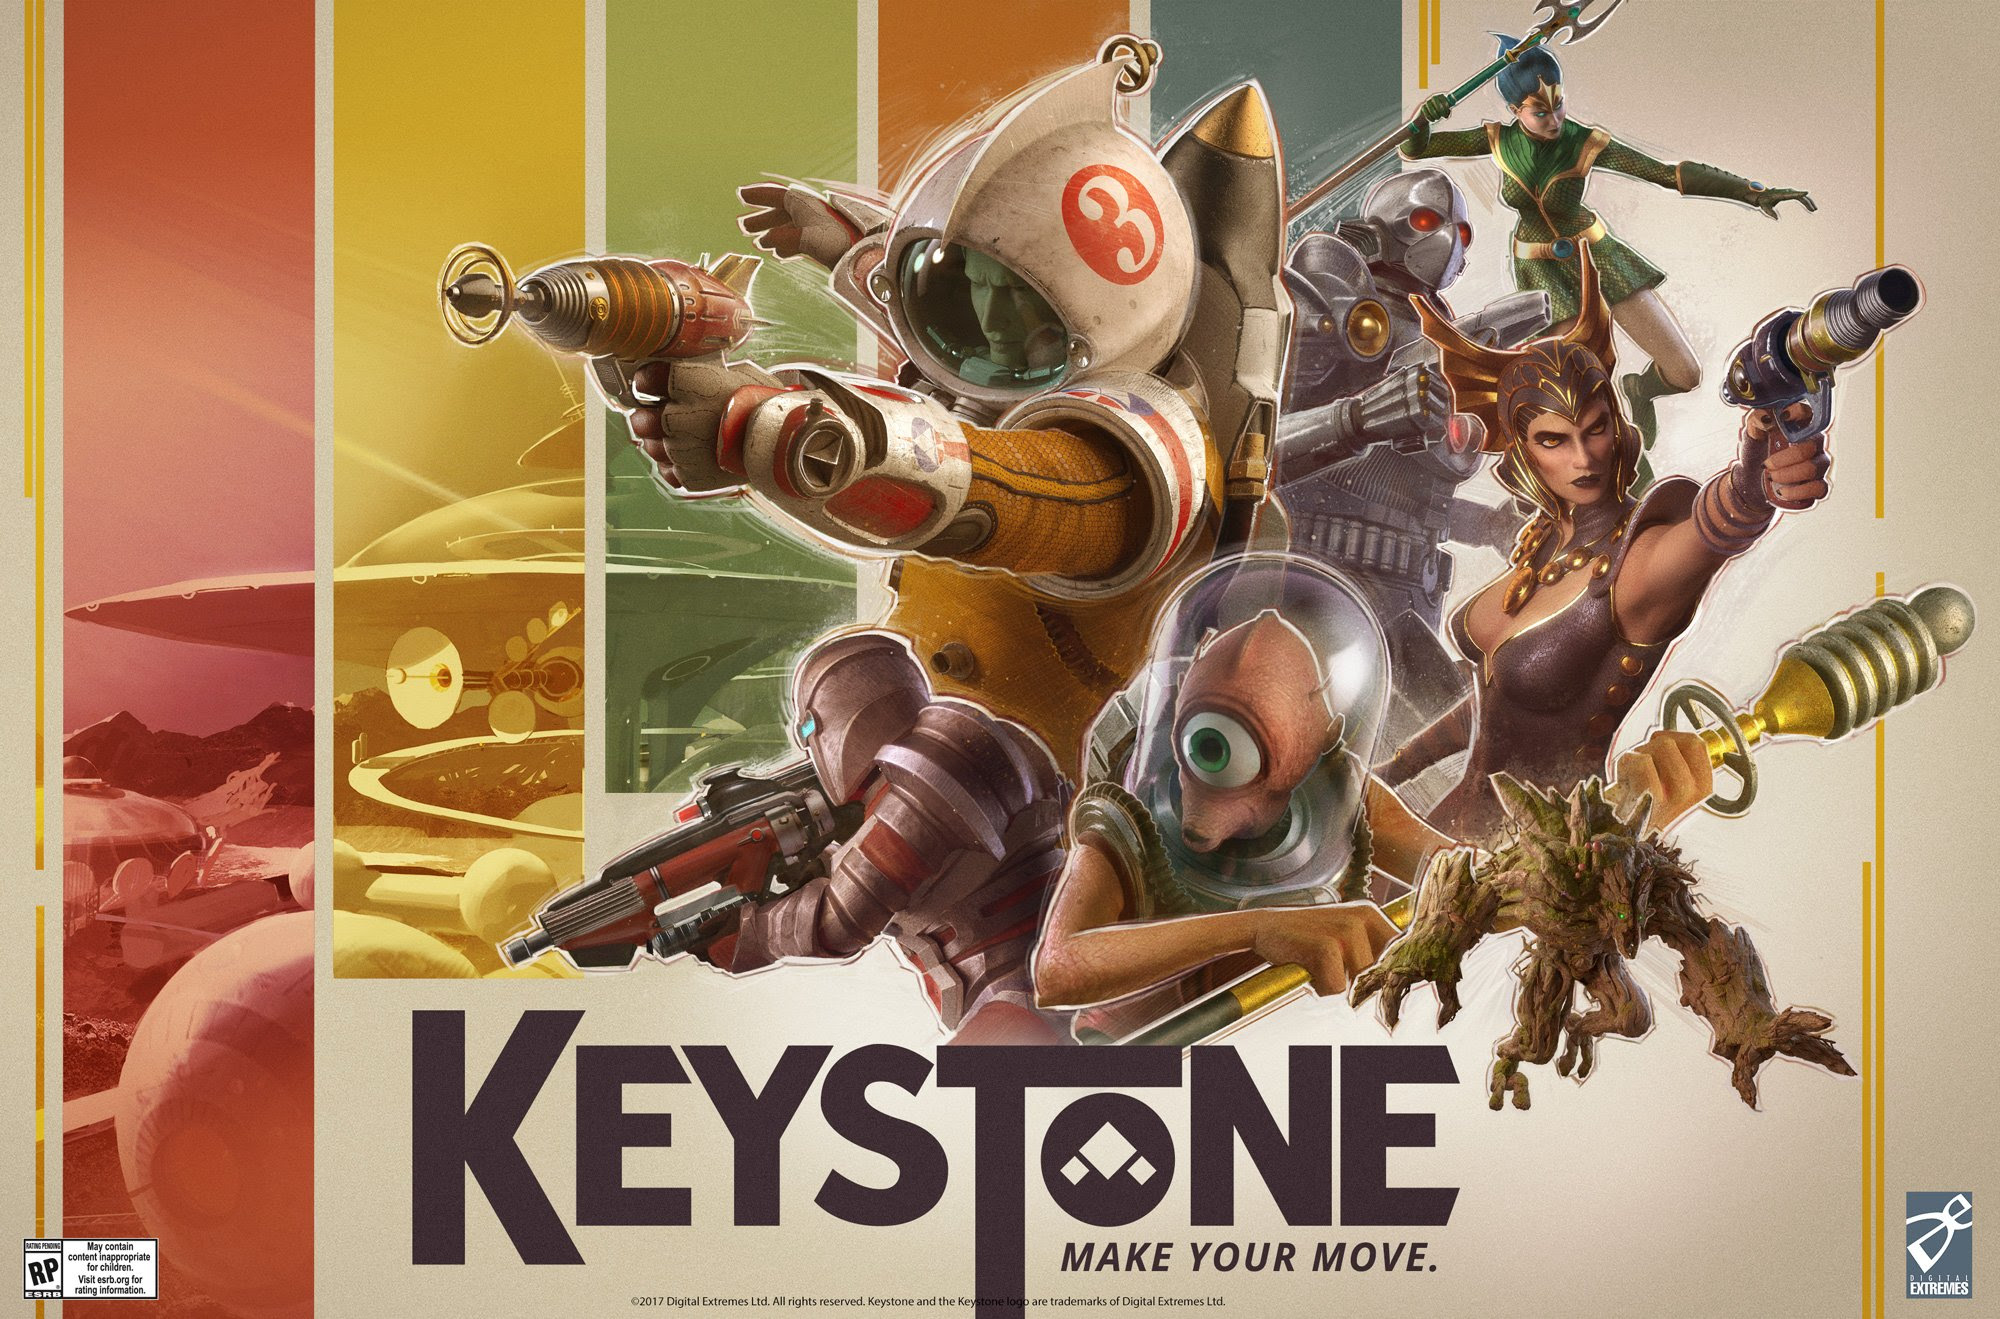 Keystone is a new F2P shooter from the Warfame developer screenshot